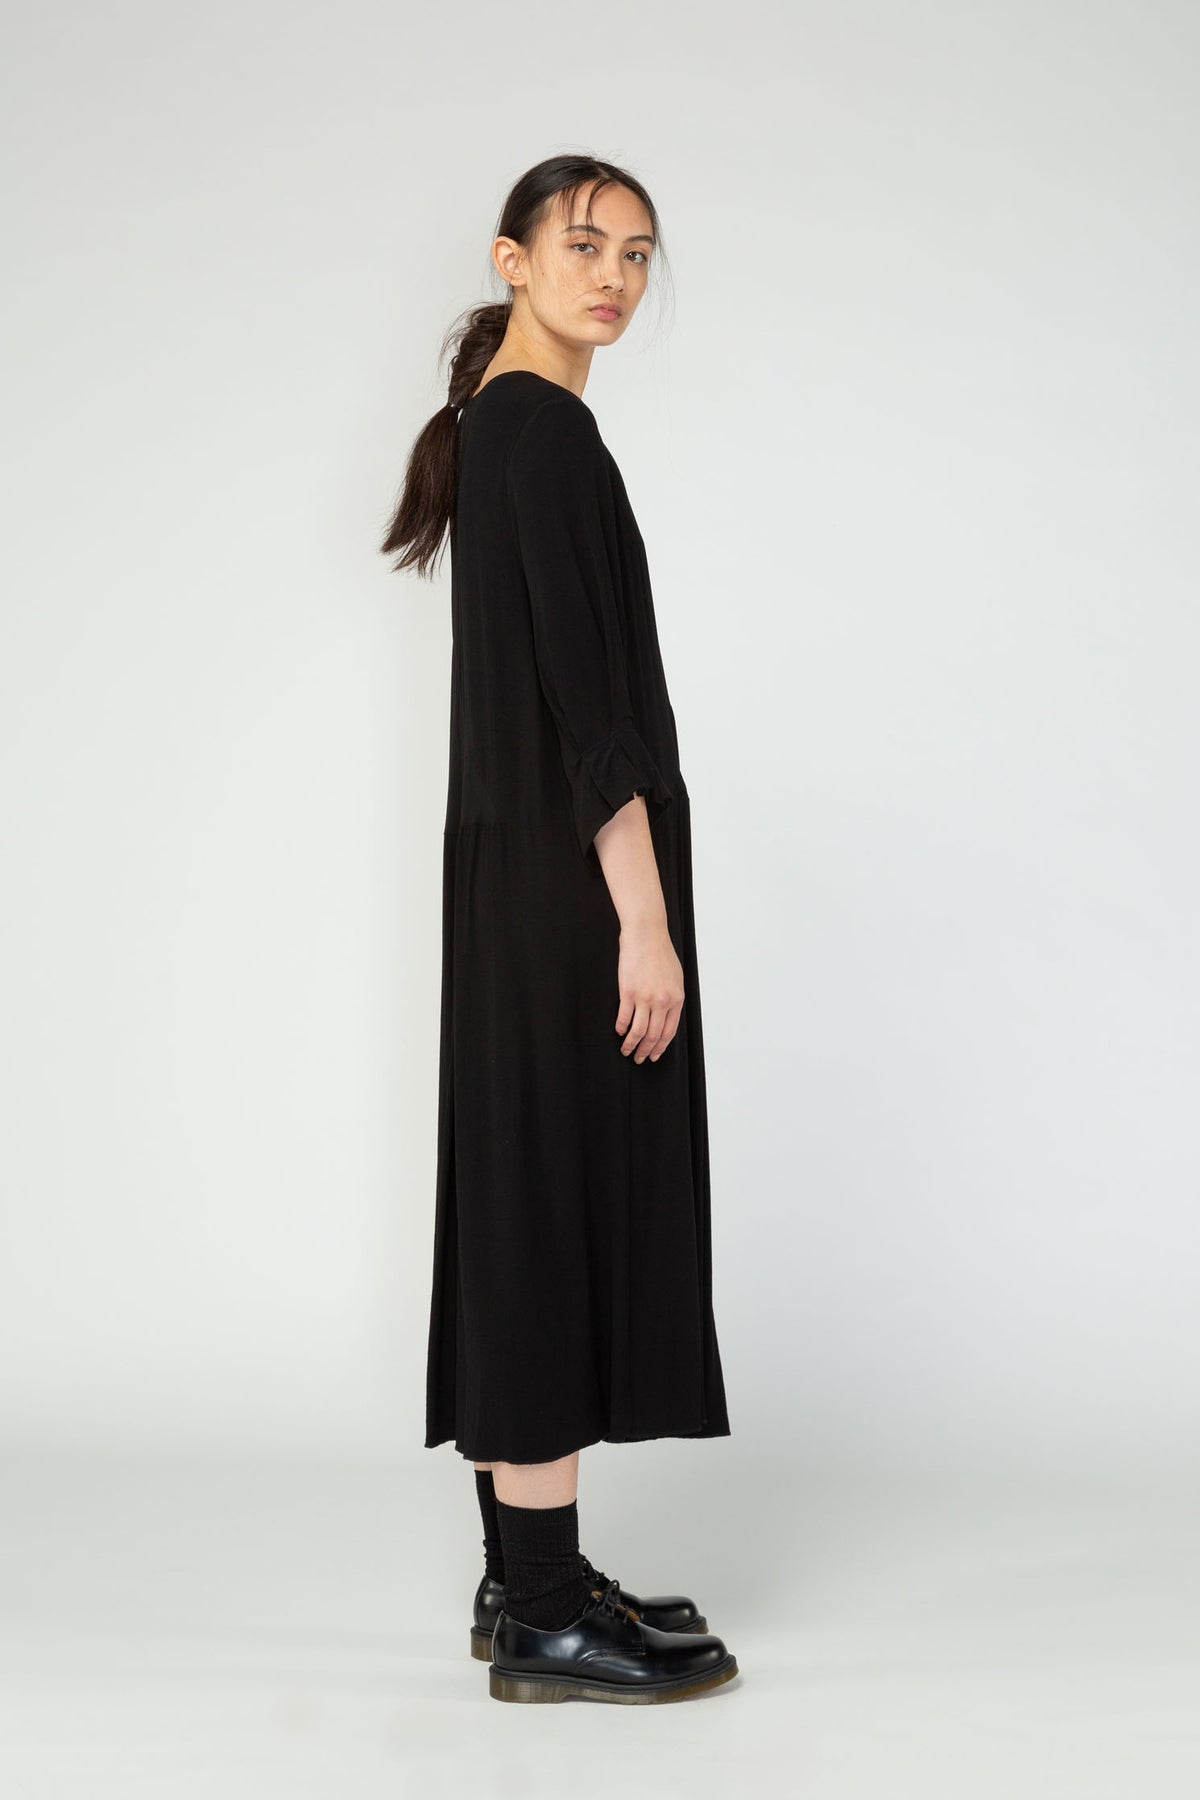 Nom*d dissection dress black 3//4 sleeve new season nz made